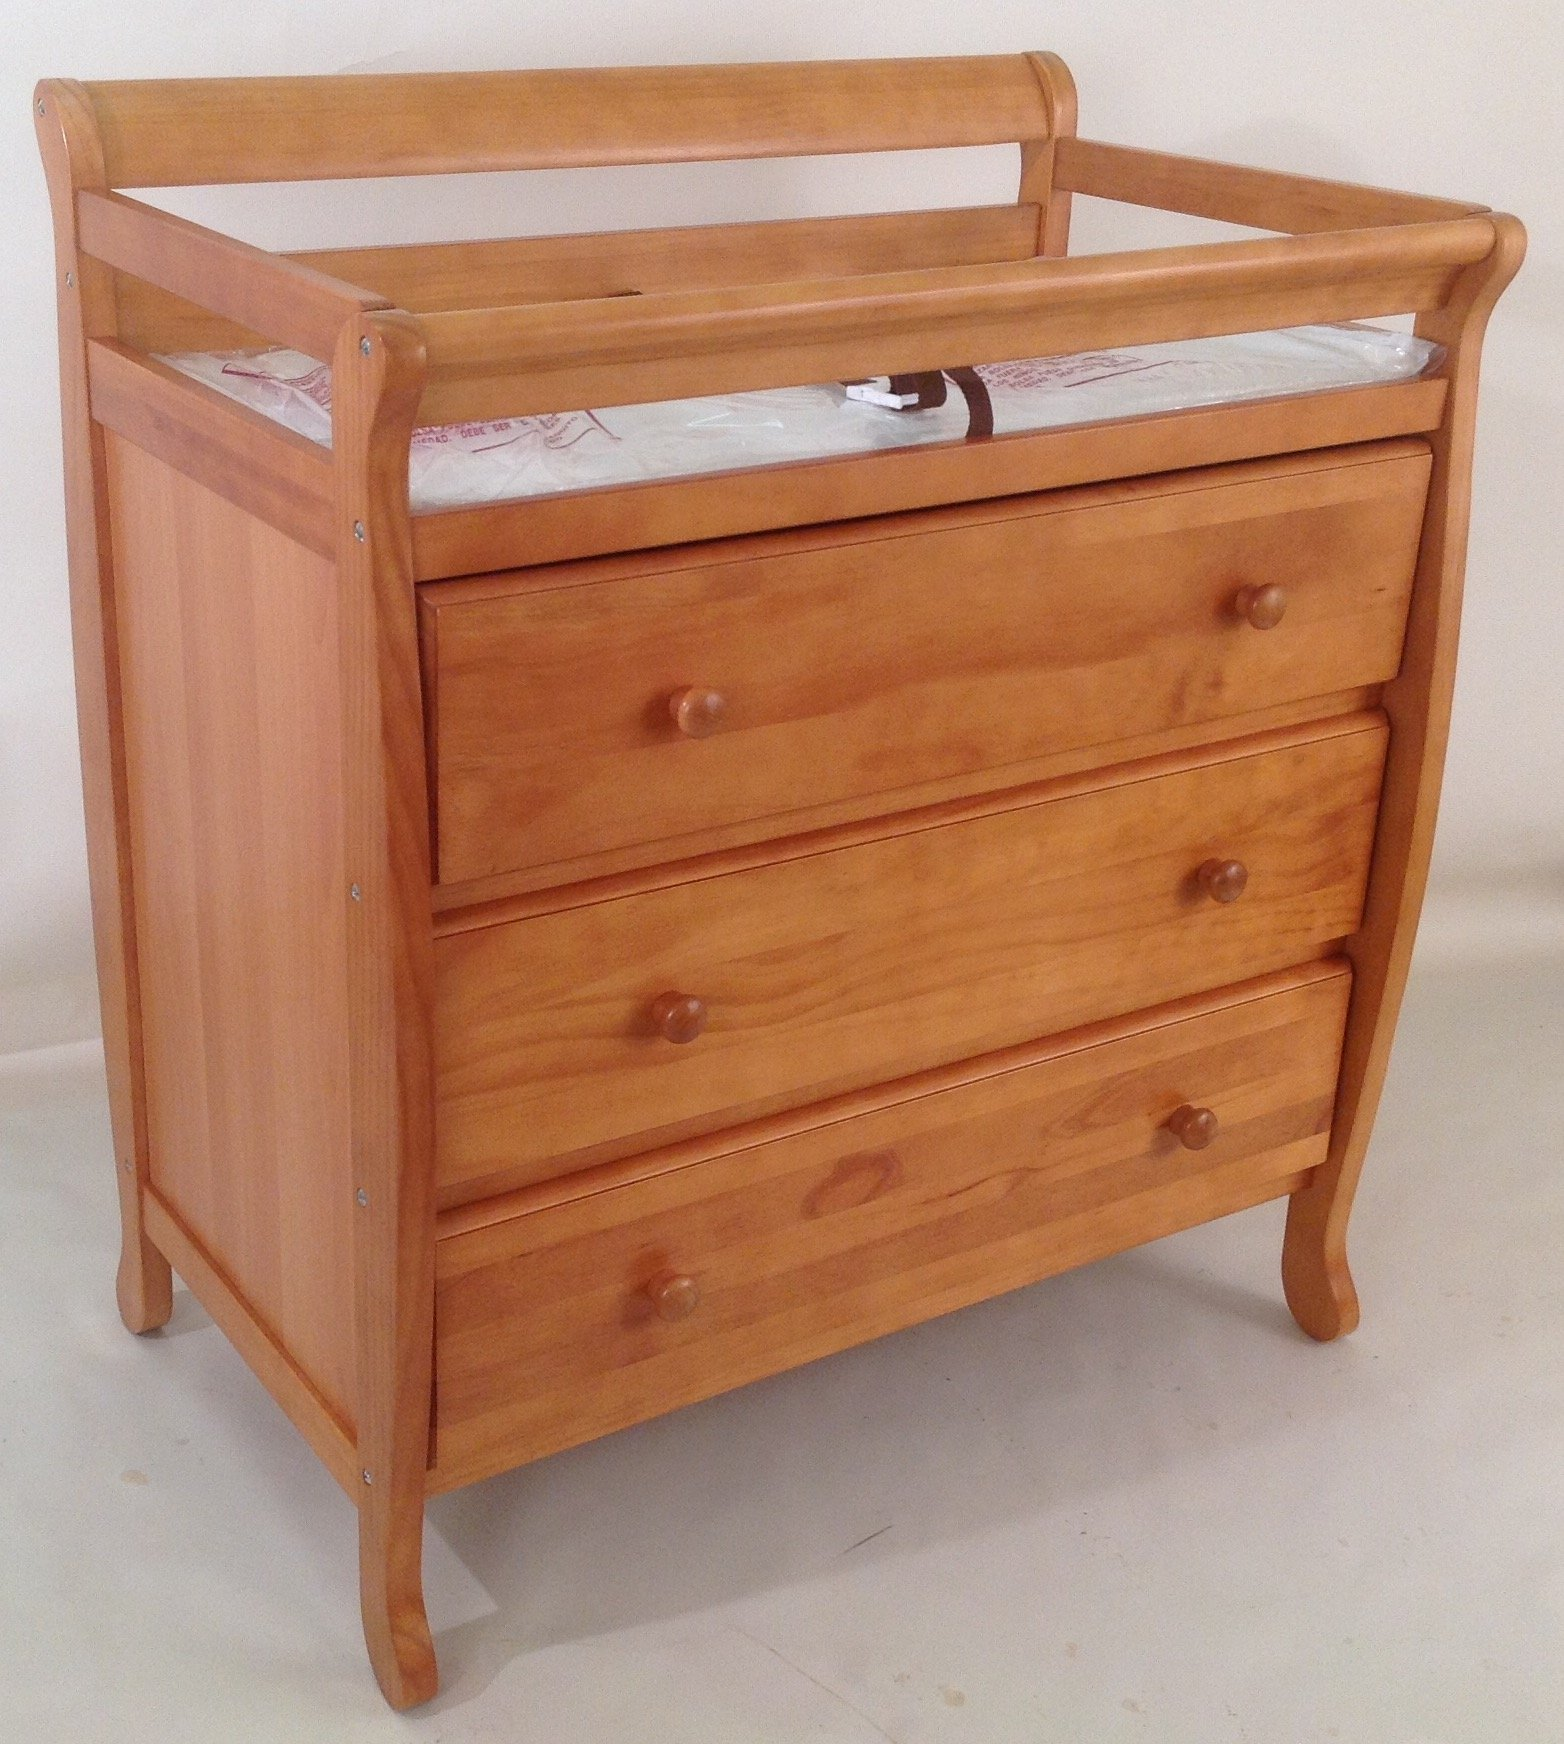 Angel Line Sleigh Changer with 3 Drawers - Oak